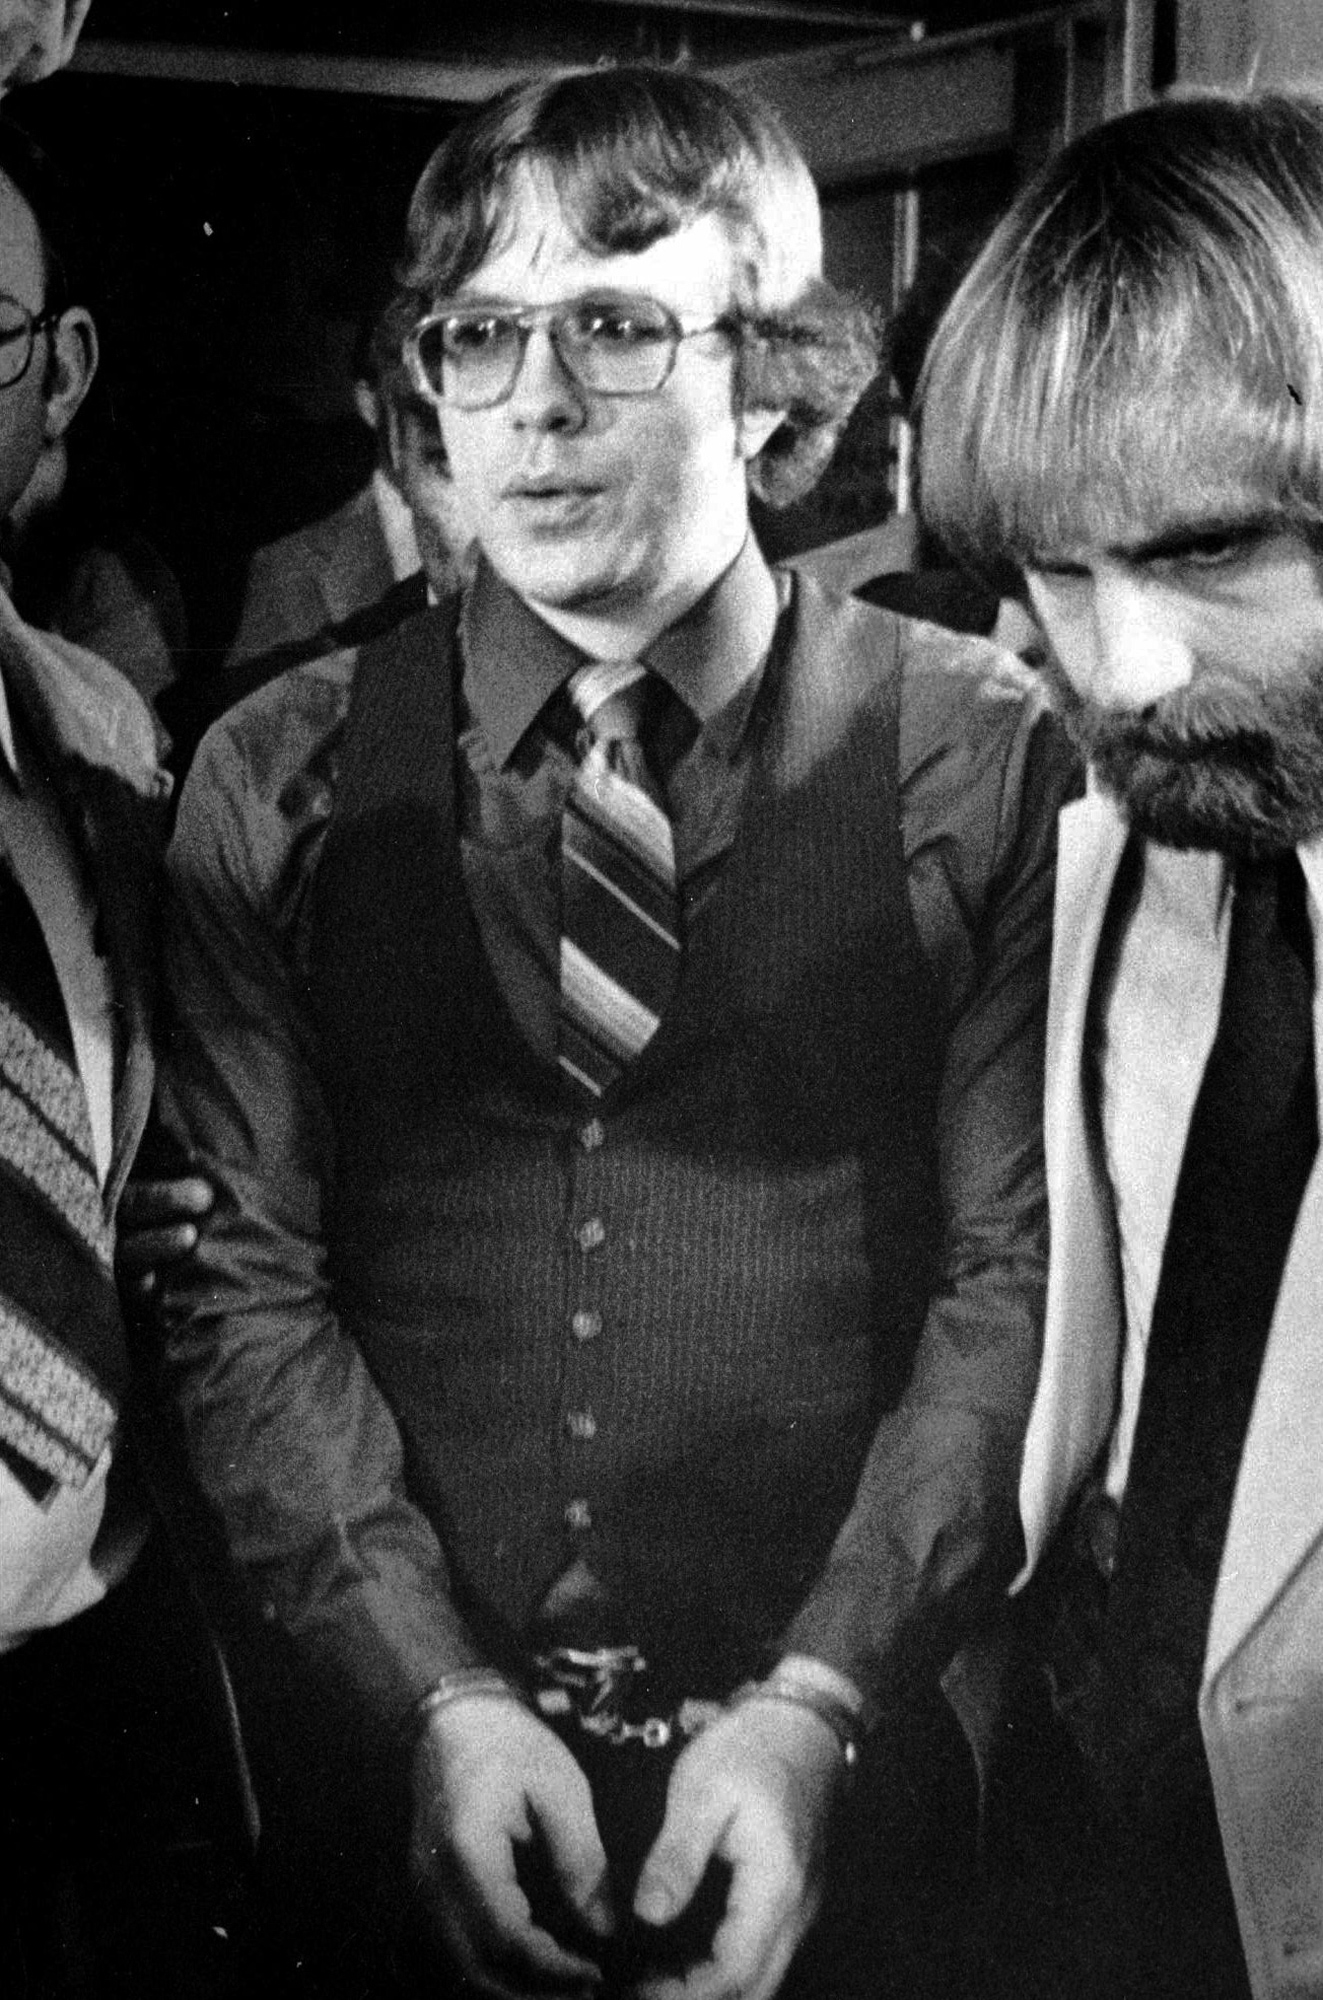 Joseph Paul Franklin following his conviction on two counts of first degree murder in Salt Lake City, June 2, 1981.